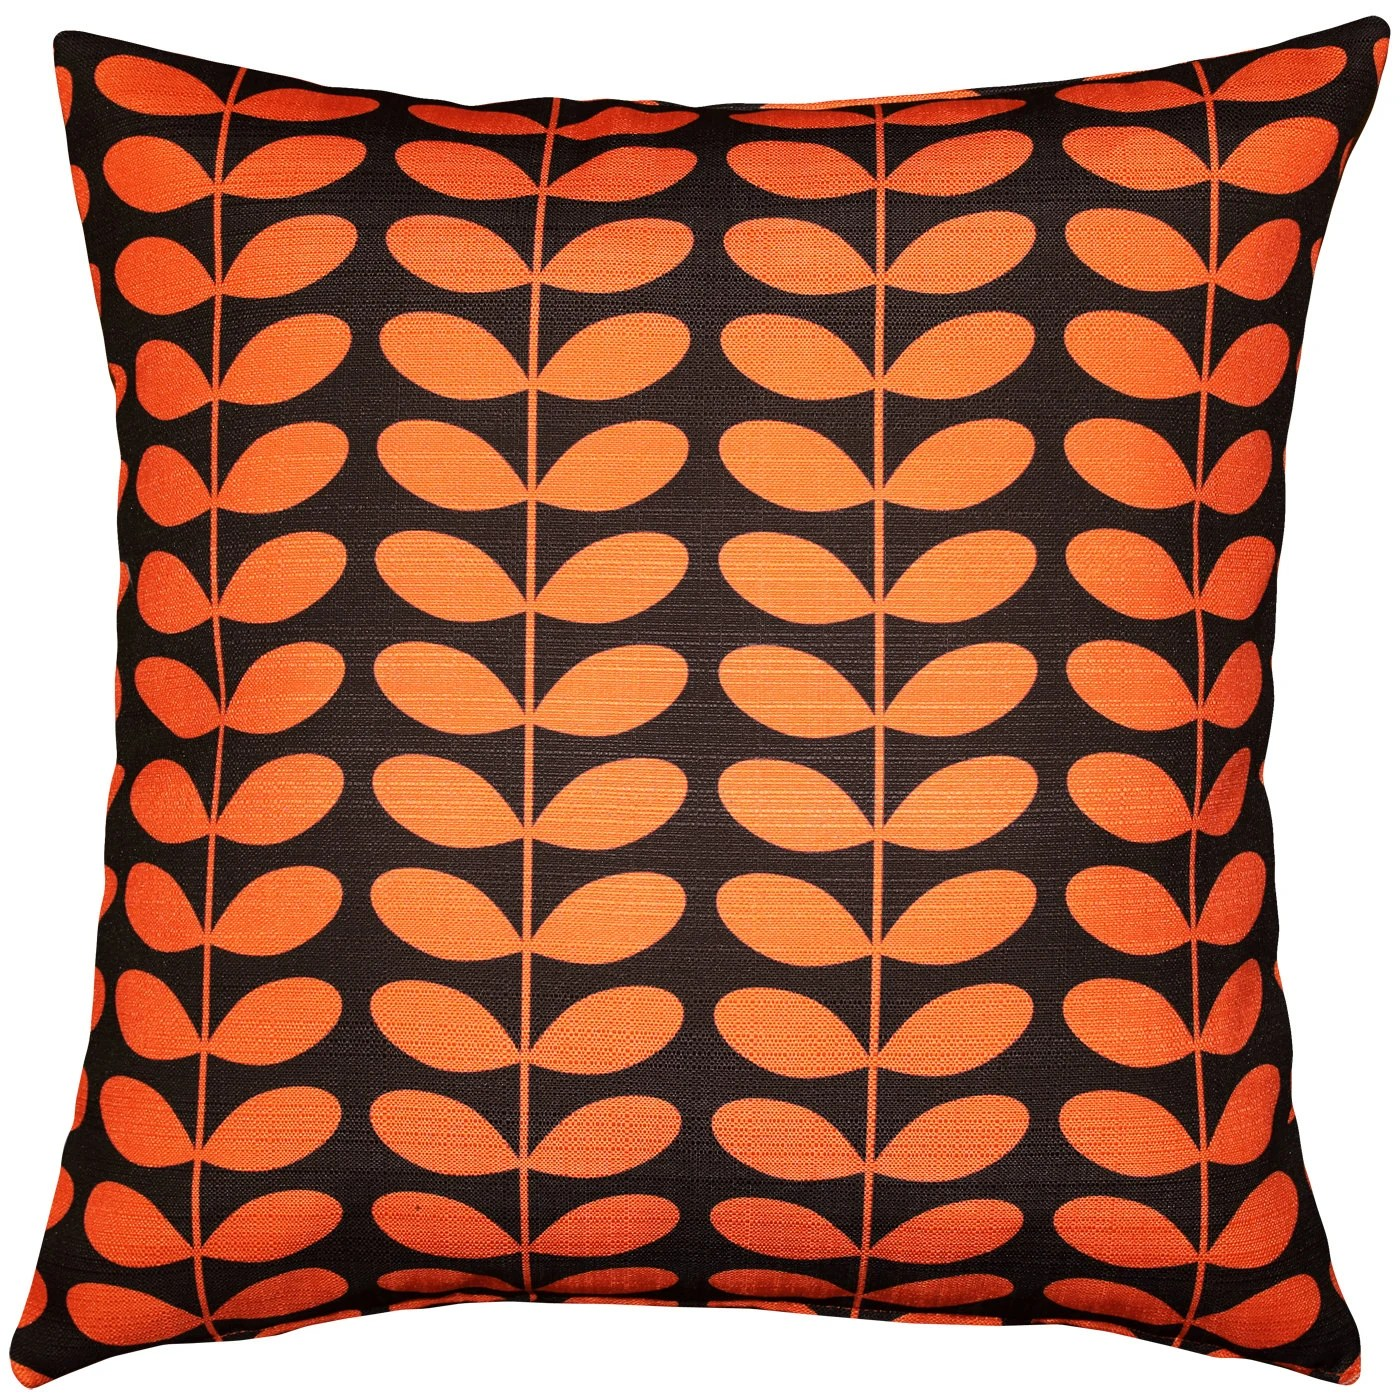 MidCentury Modern Orange Throw Pillow 20x20